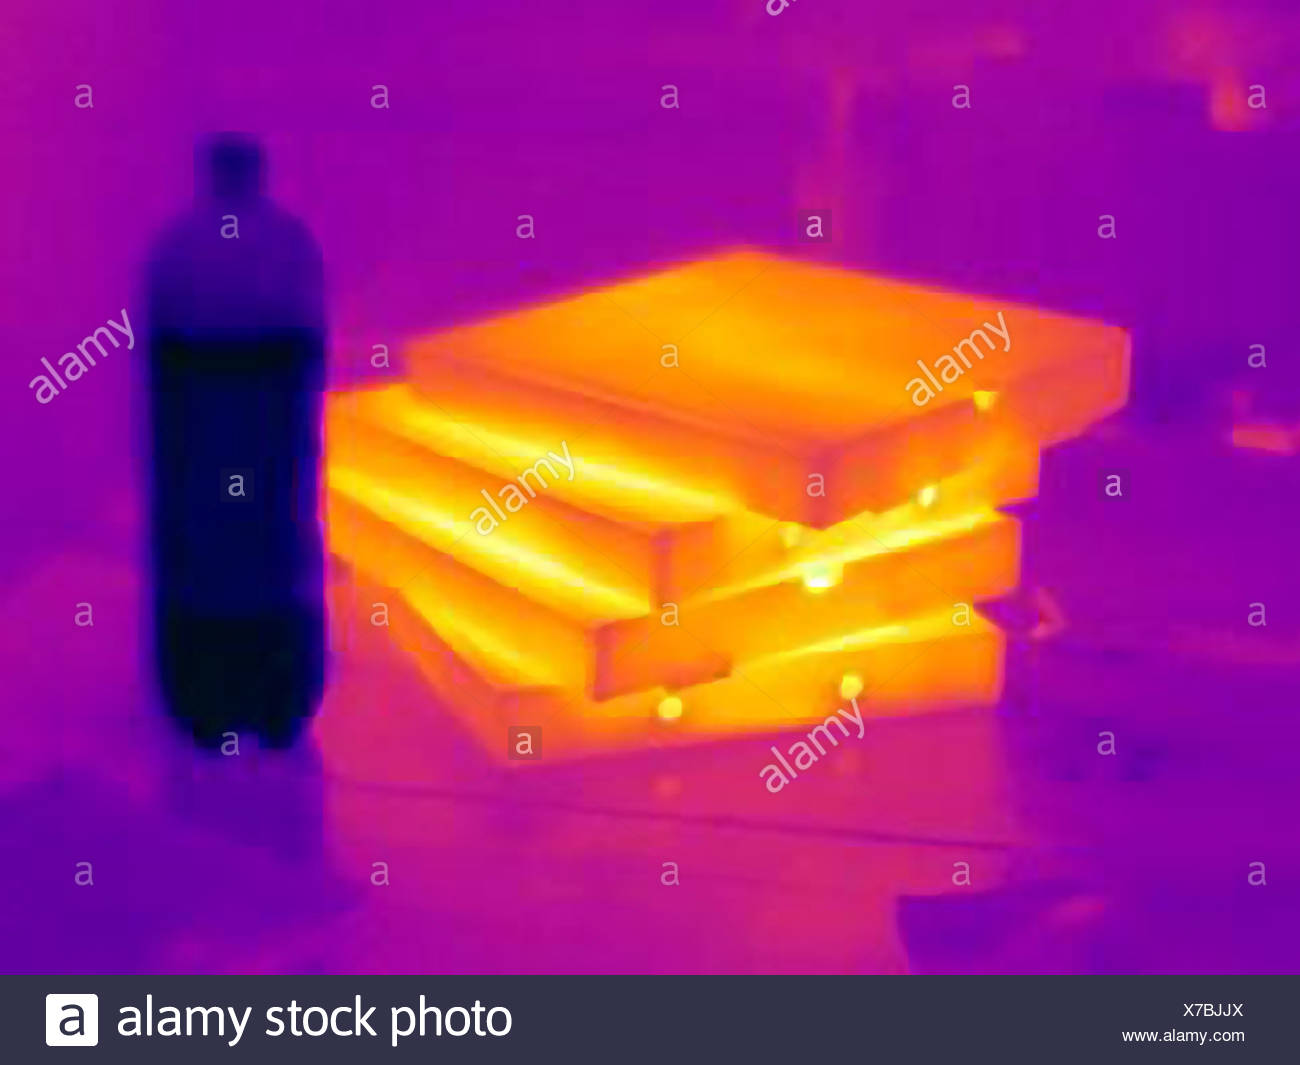 Thermal image of pizza boxes - Stock Image